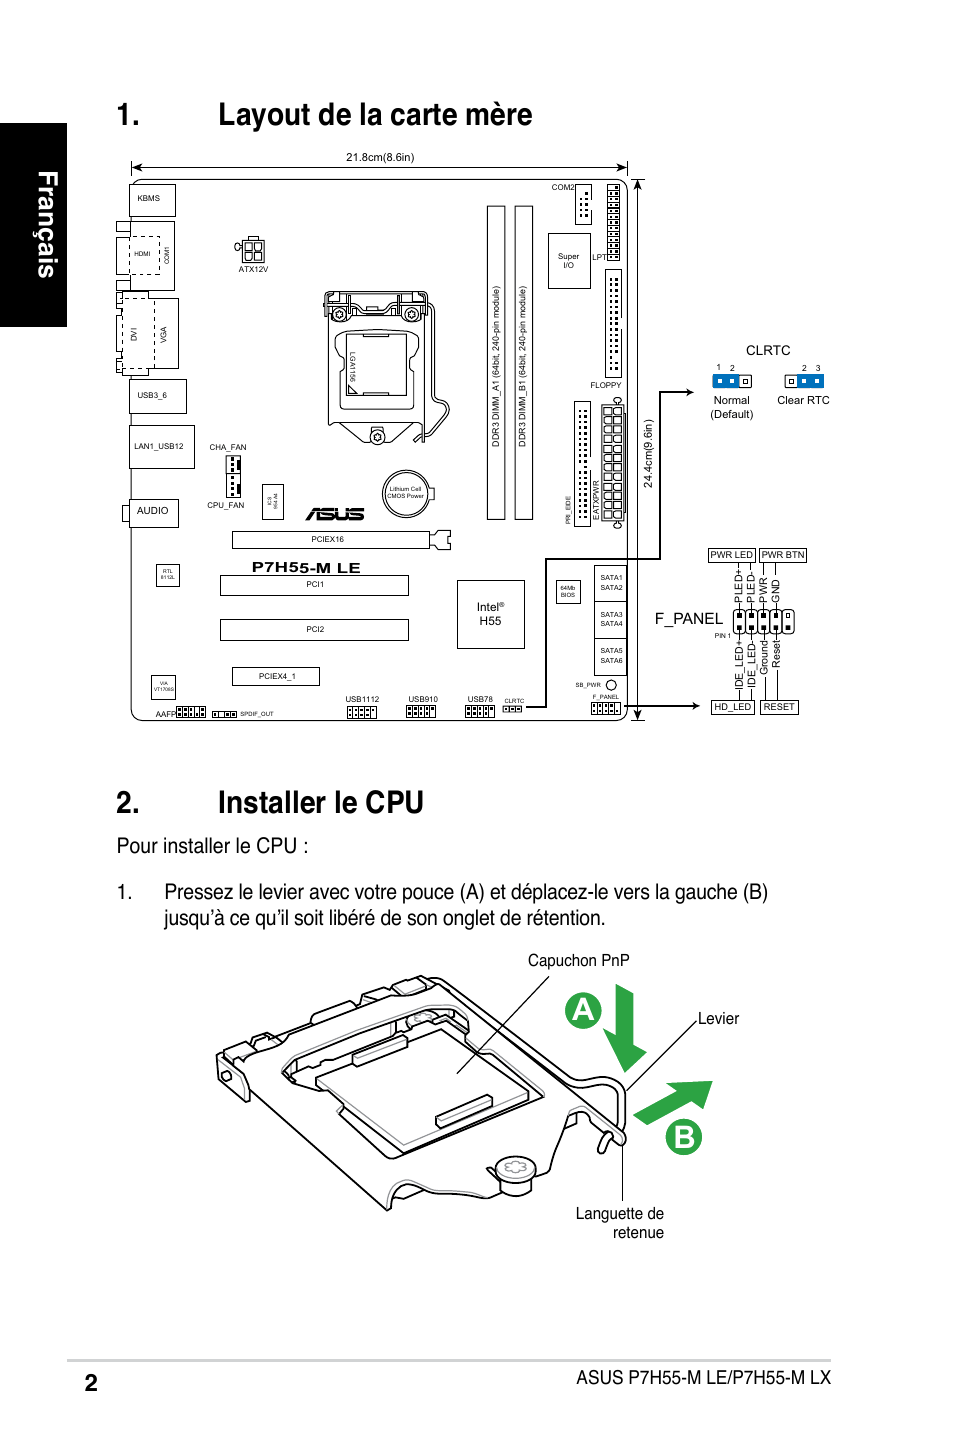 Installer le cpu, Layout de la carte mère, Français